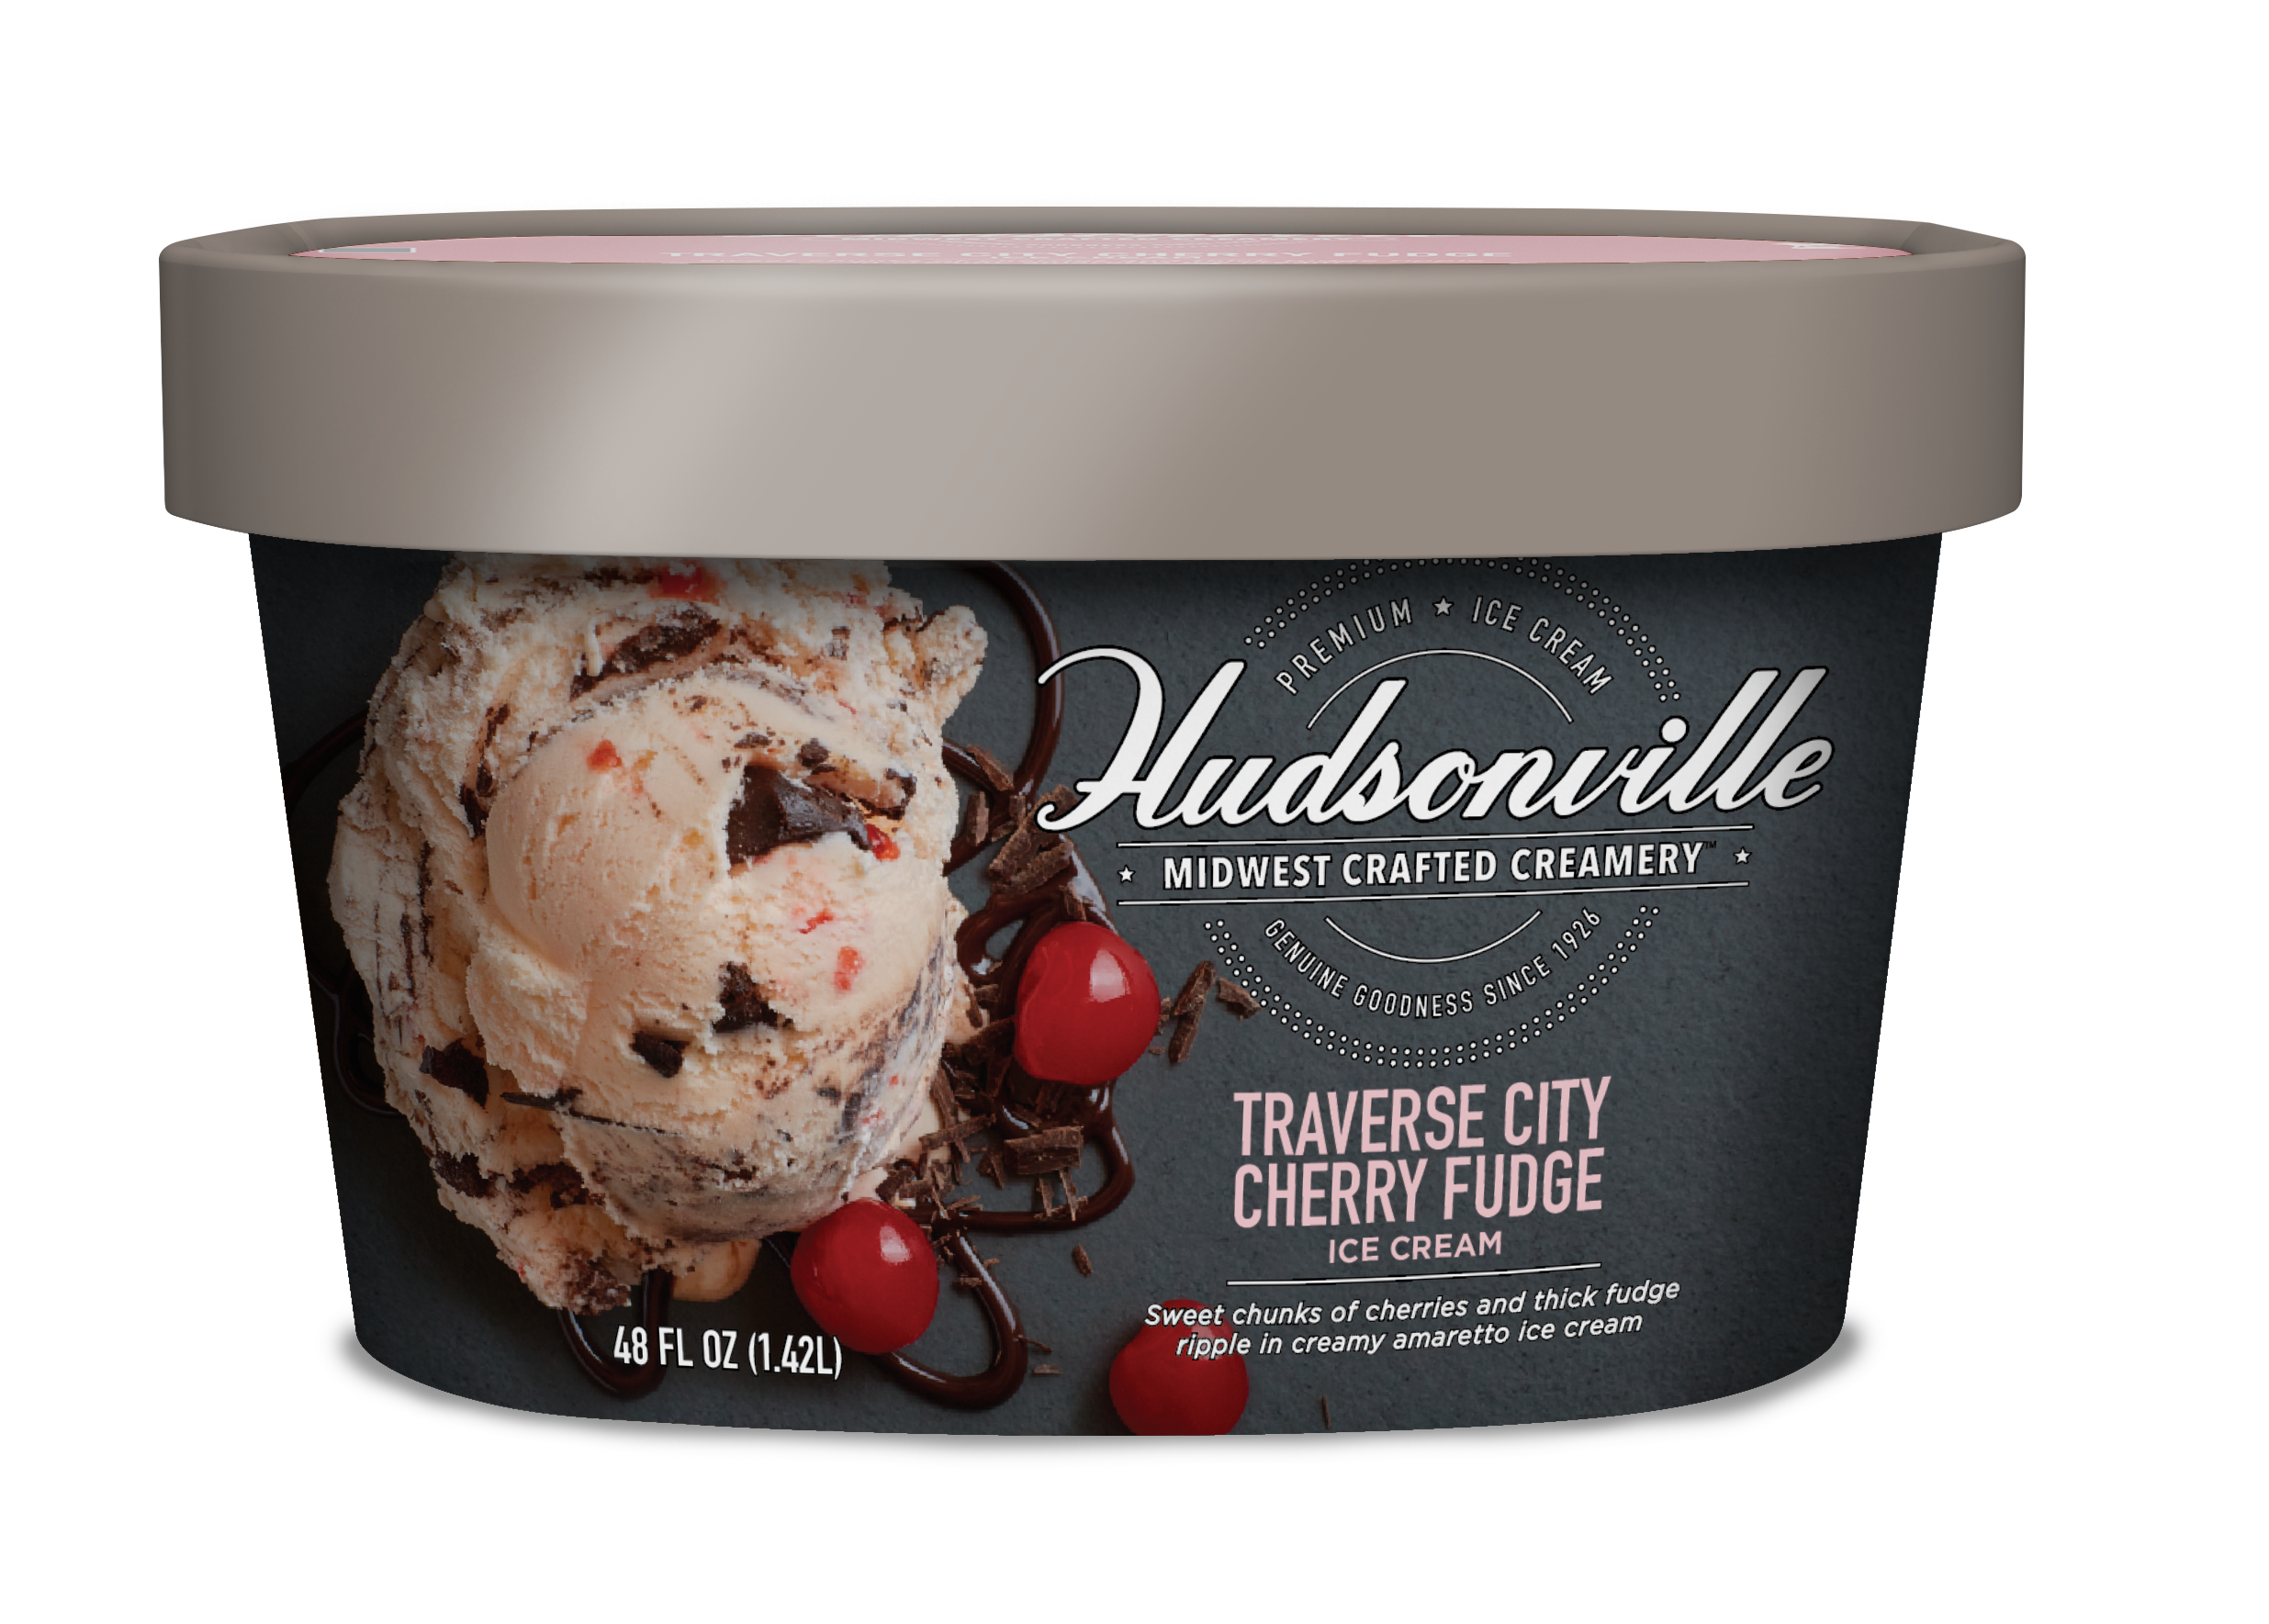 Hudsonville Ice Cream Traverse City Cherry Fudge